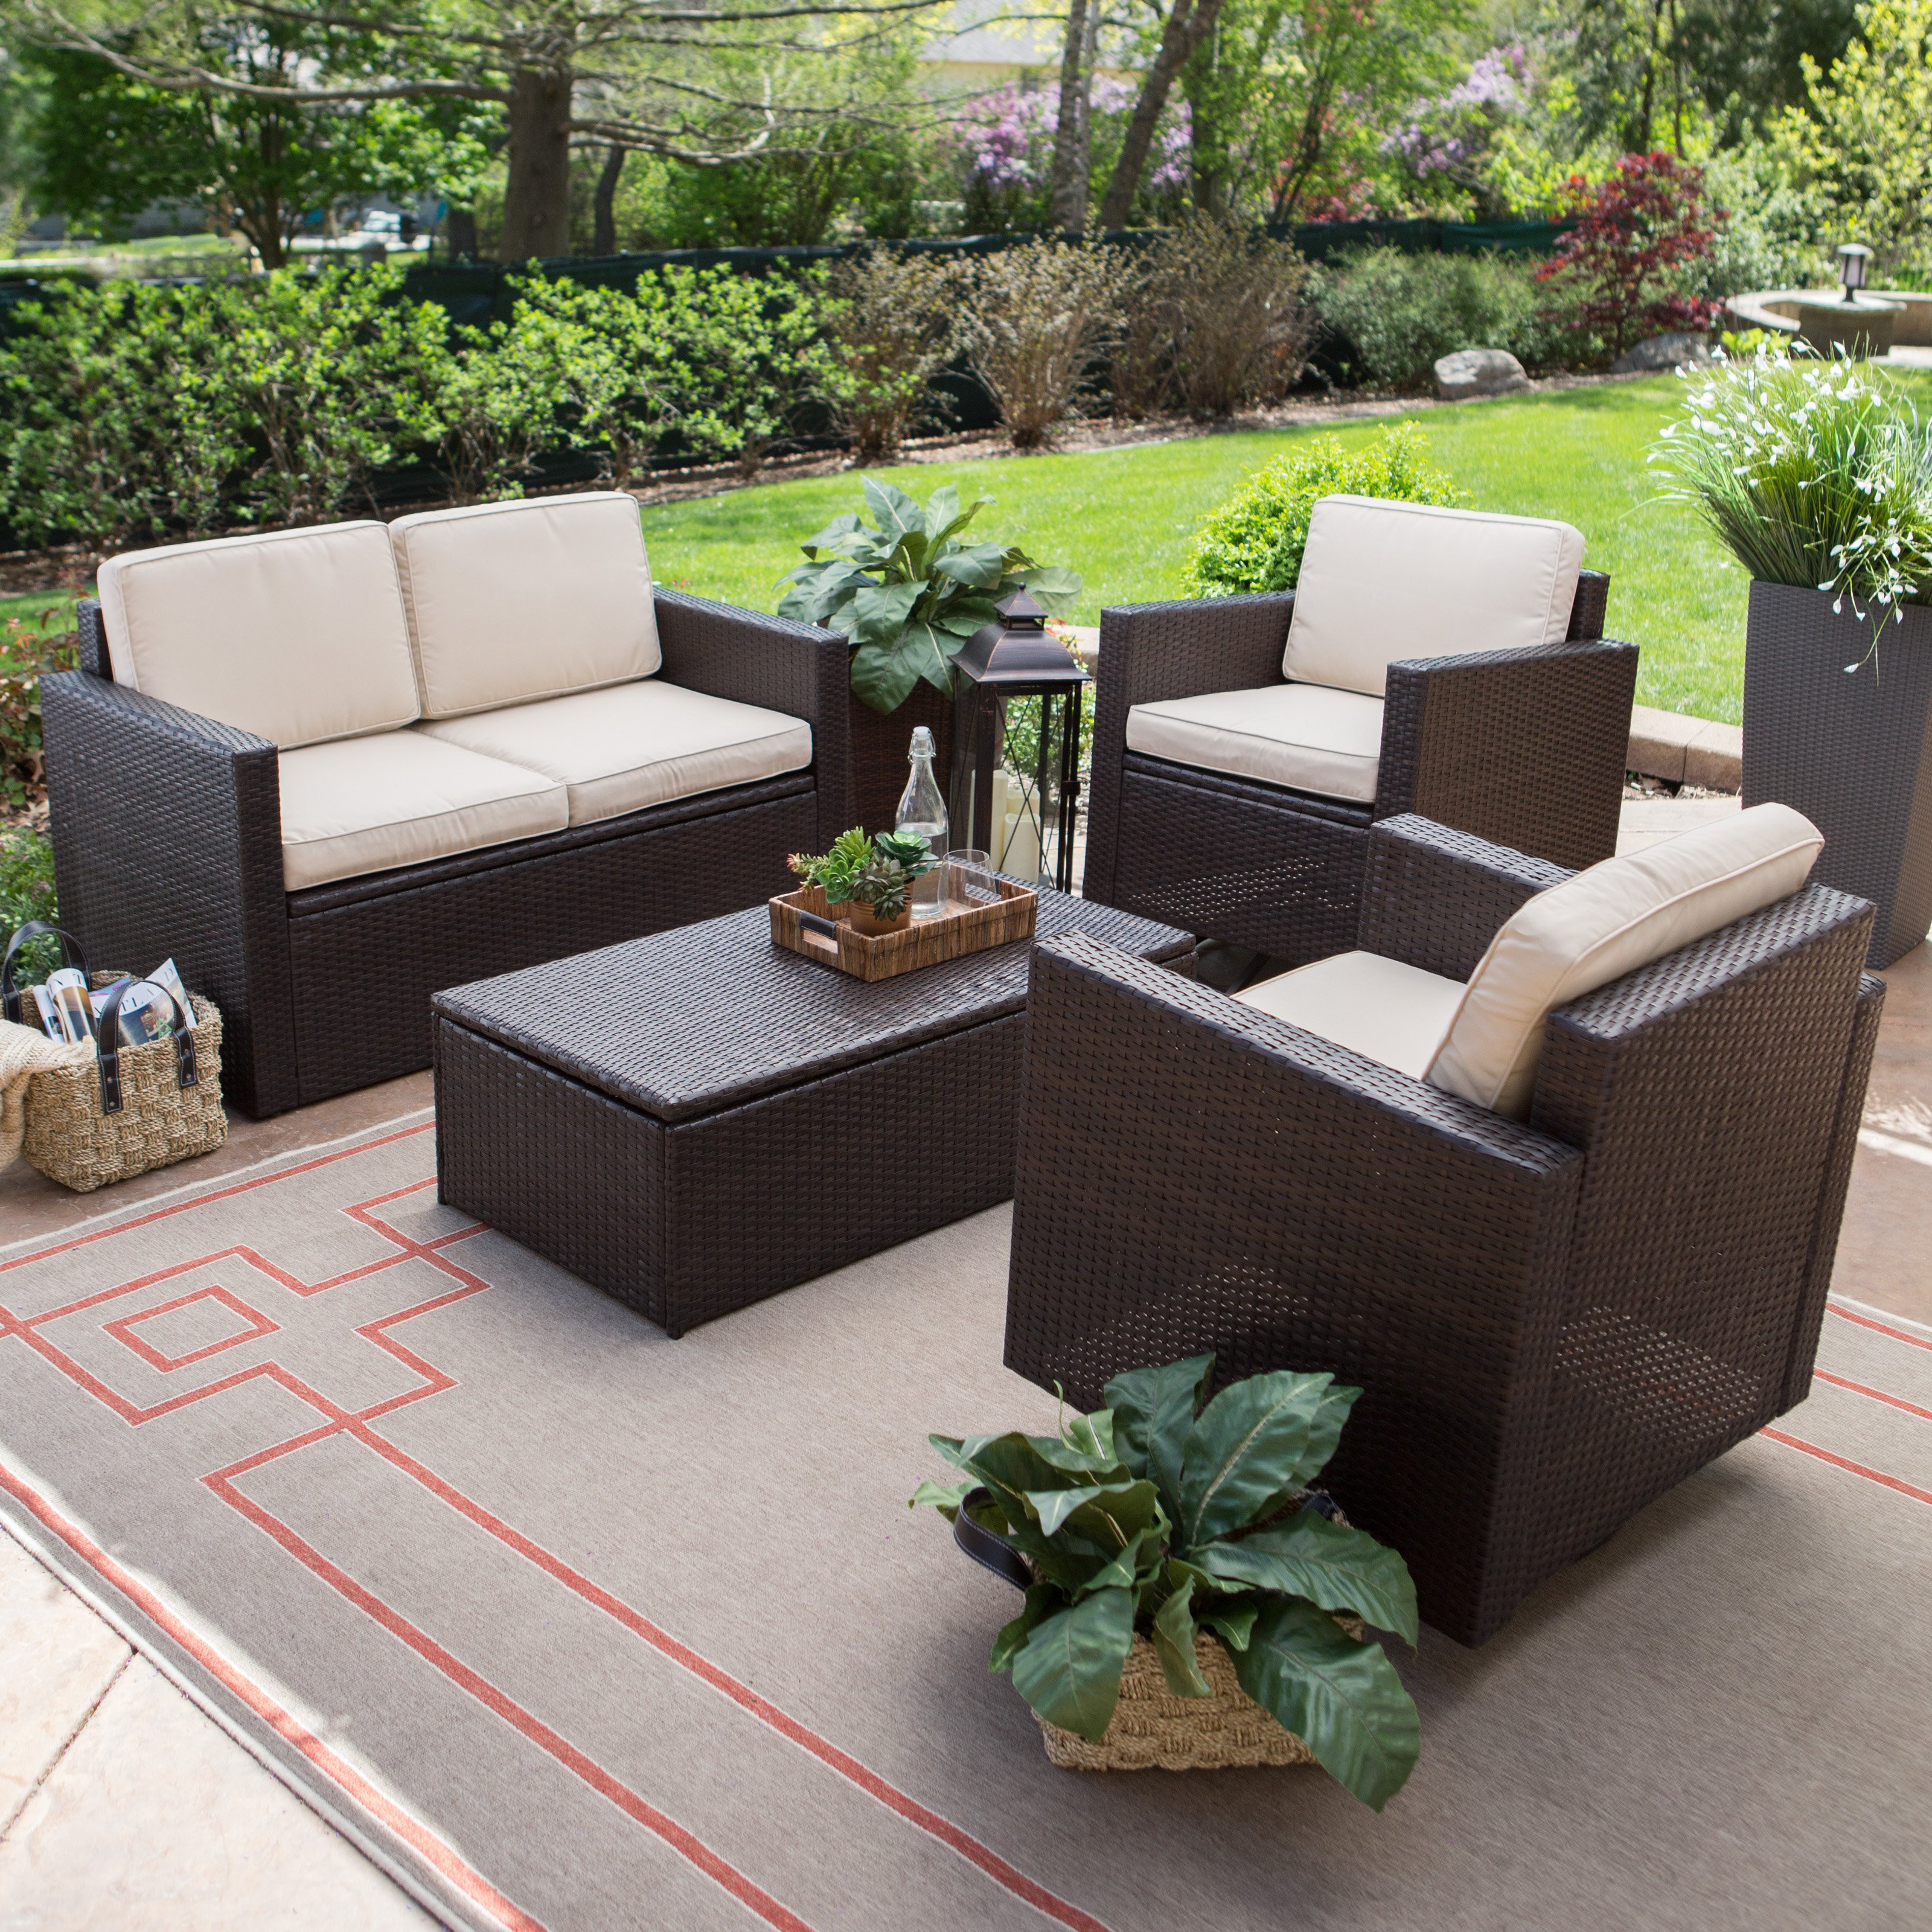 Best ideas about Patio Furniture Clearance Costco . Save or Pin Patio Cool Conversation Sets Patio Furniture Clearance Now.